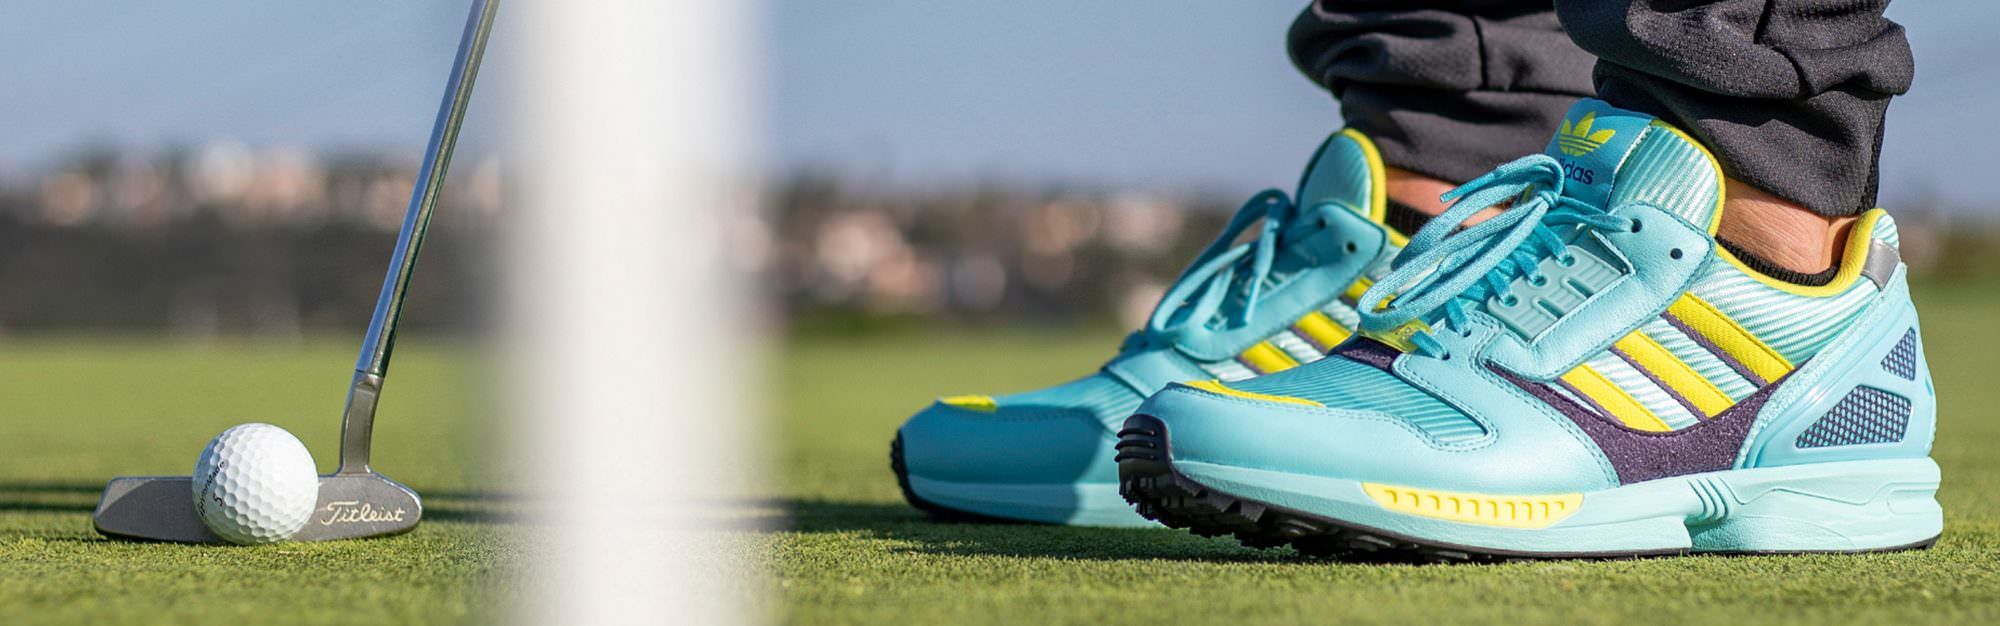 New golf shoes released in 2020